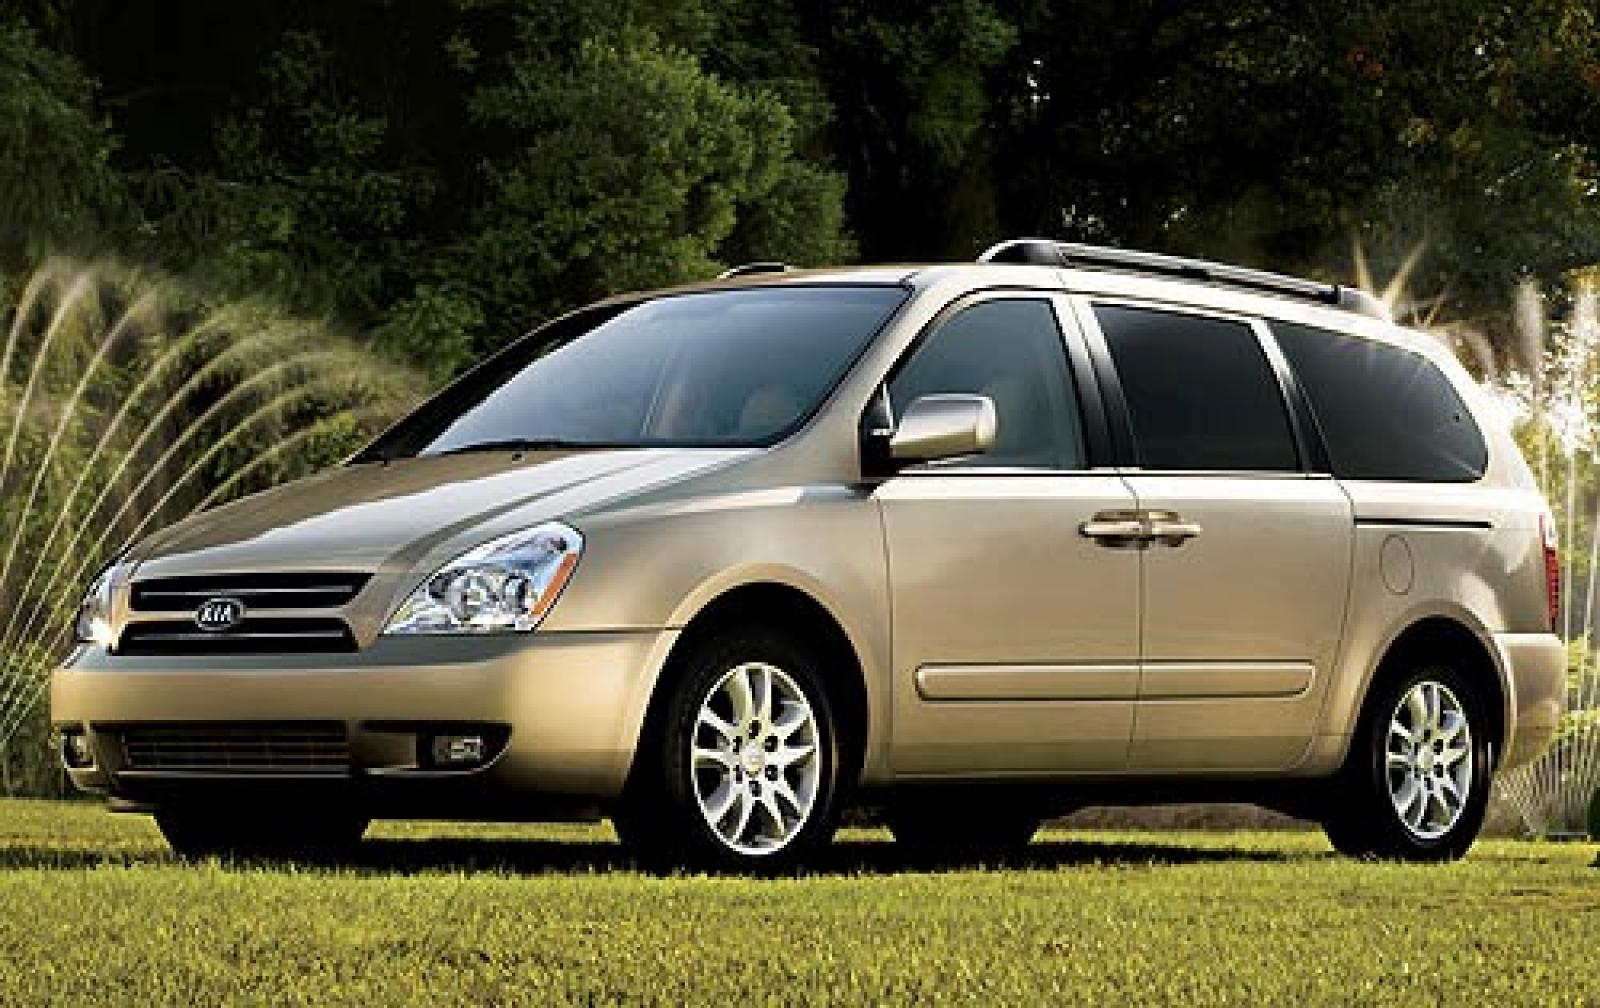 2007 kia sedona information and photos zombiedrive. Black Bedroom Furniture Sets. Home Design Ideas